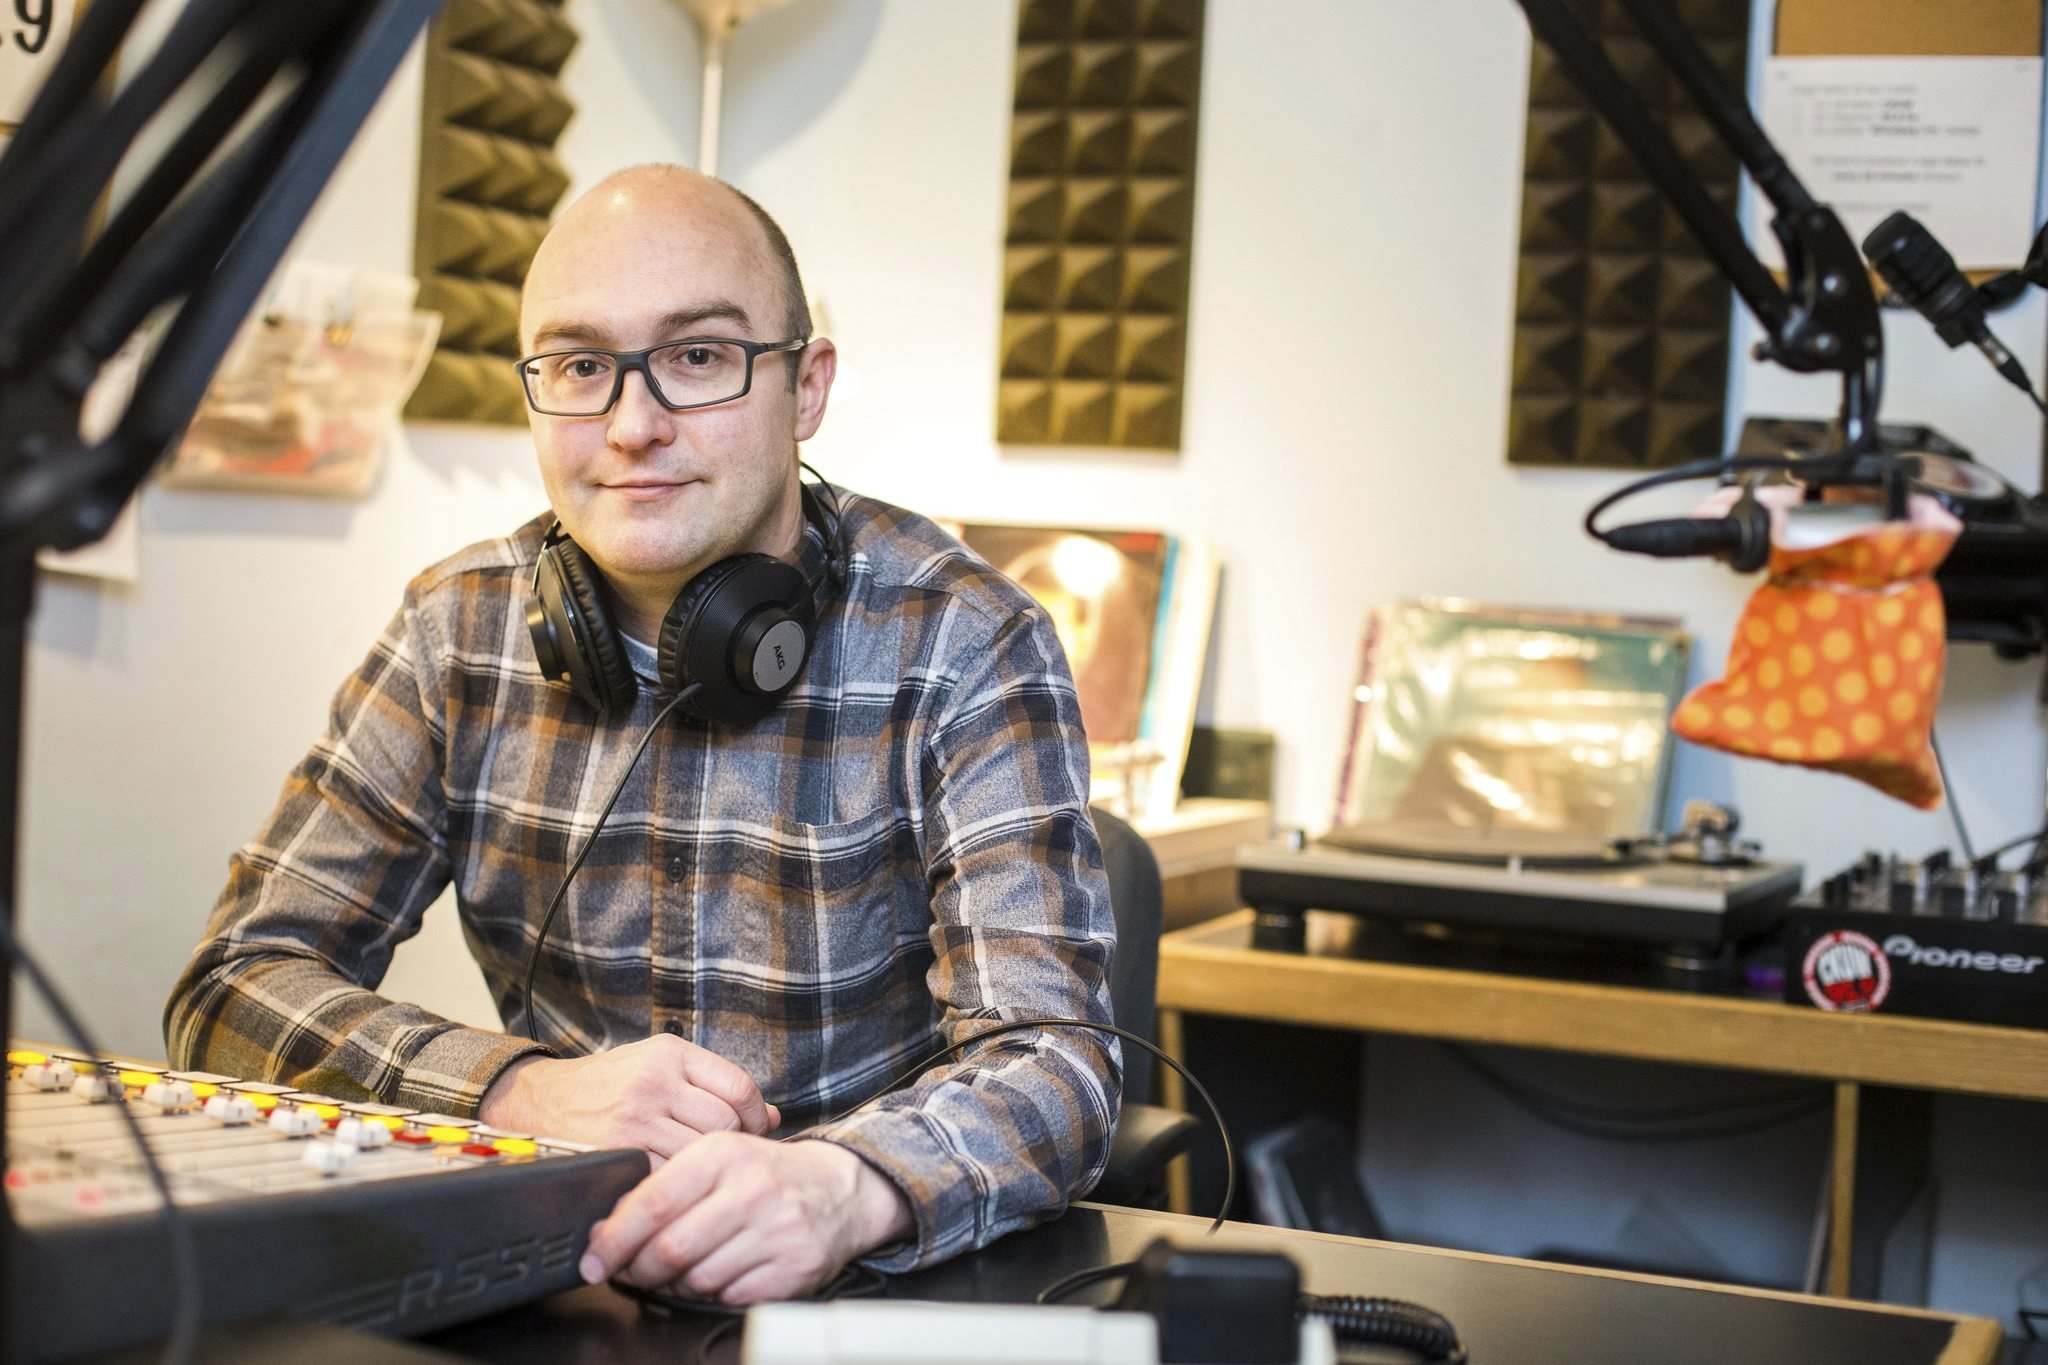 MIKAELA MACKENZIE / WINNIPEG FREE PRESS</p><p>CKUW station manager Rob Schmidt says this year's Fundrive for the campus/community radio station is more important than ever. </p>